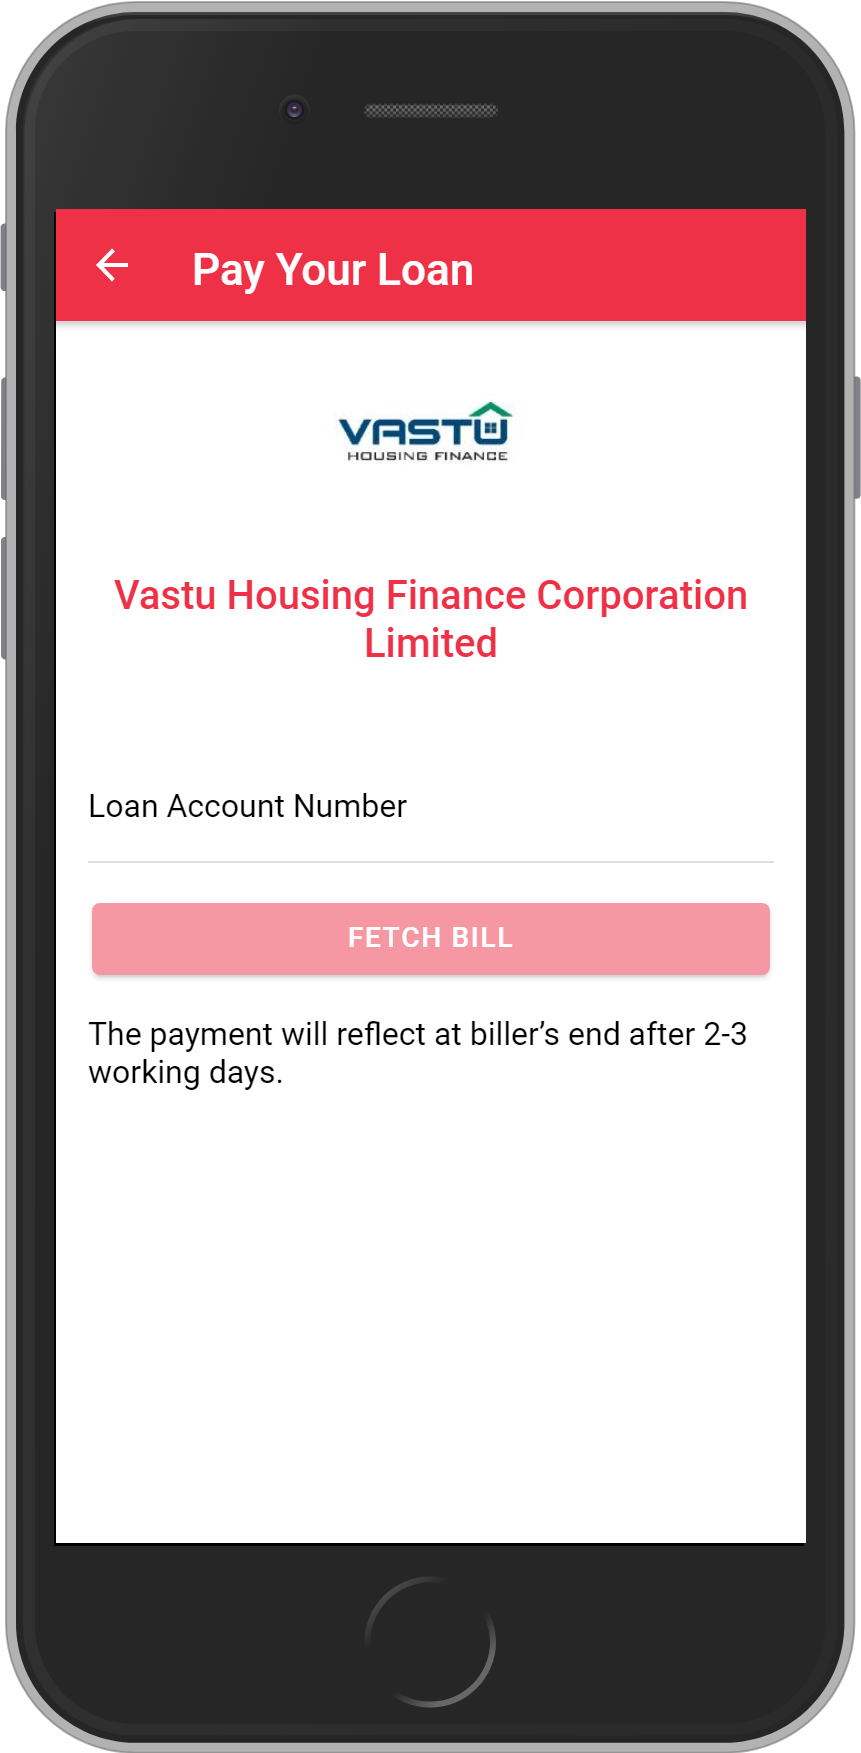 Get UNLIMITED <b>0.1%</b> CASHBACK on Vastu Housing Finance Corporation Limited Loan Payment.